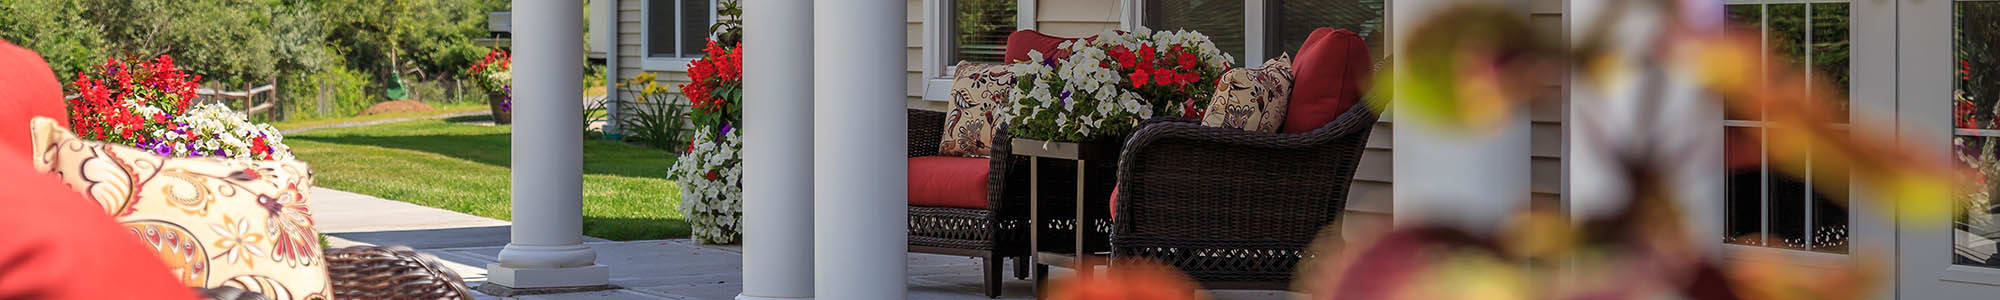 Read our privacy policy | All American Assisted Living at Raynham